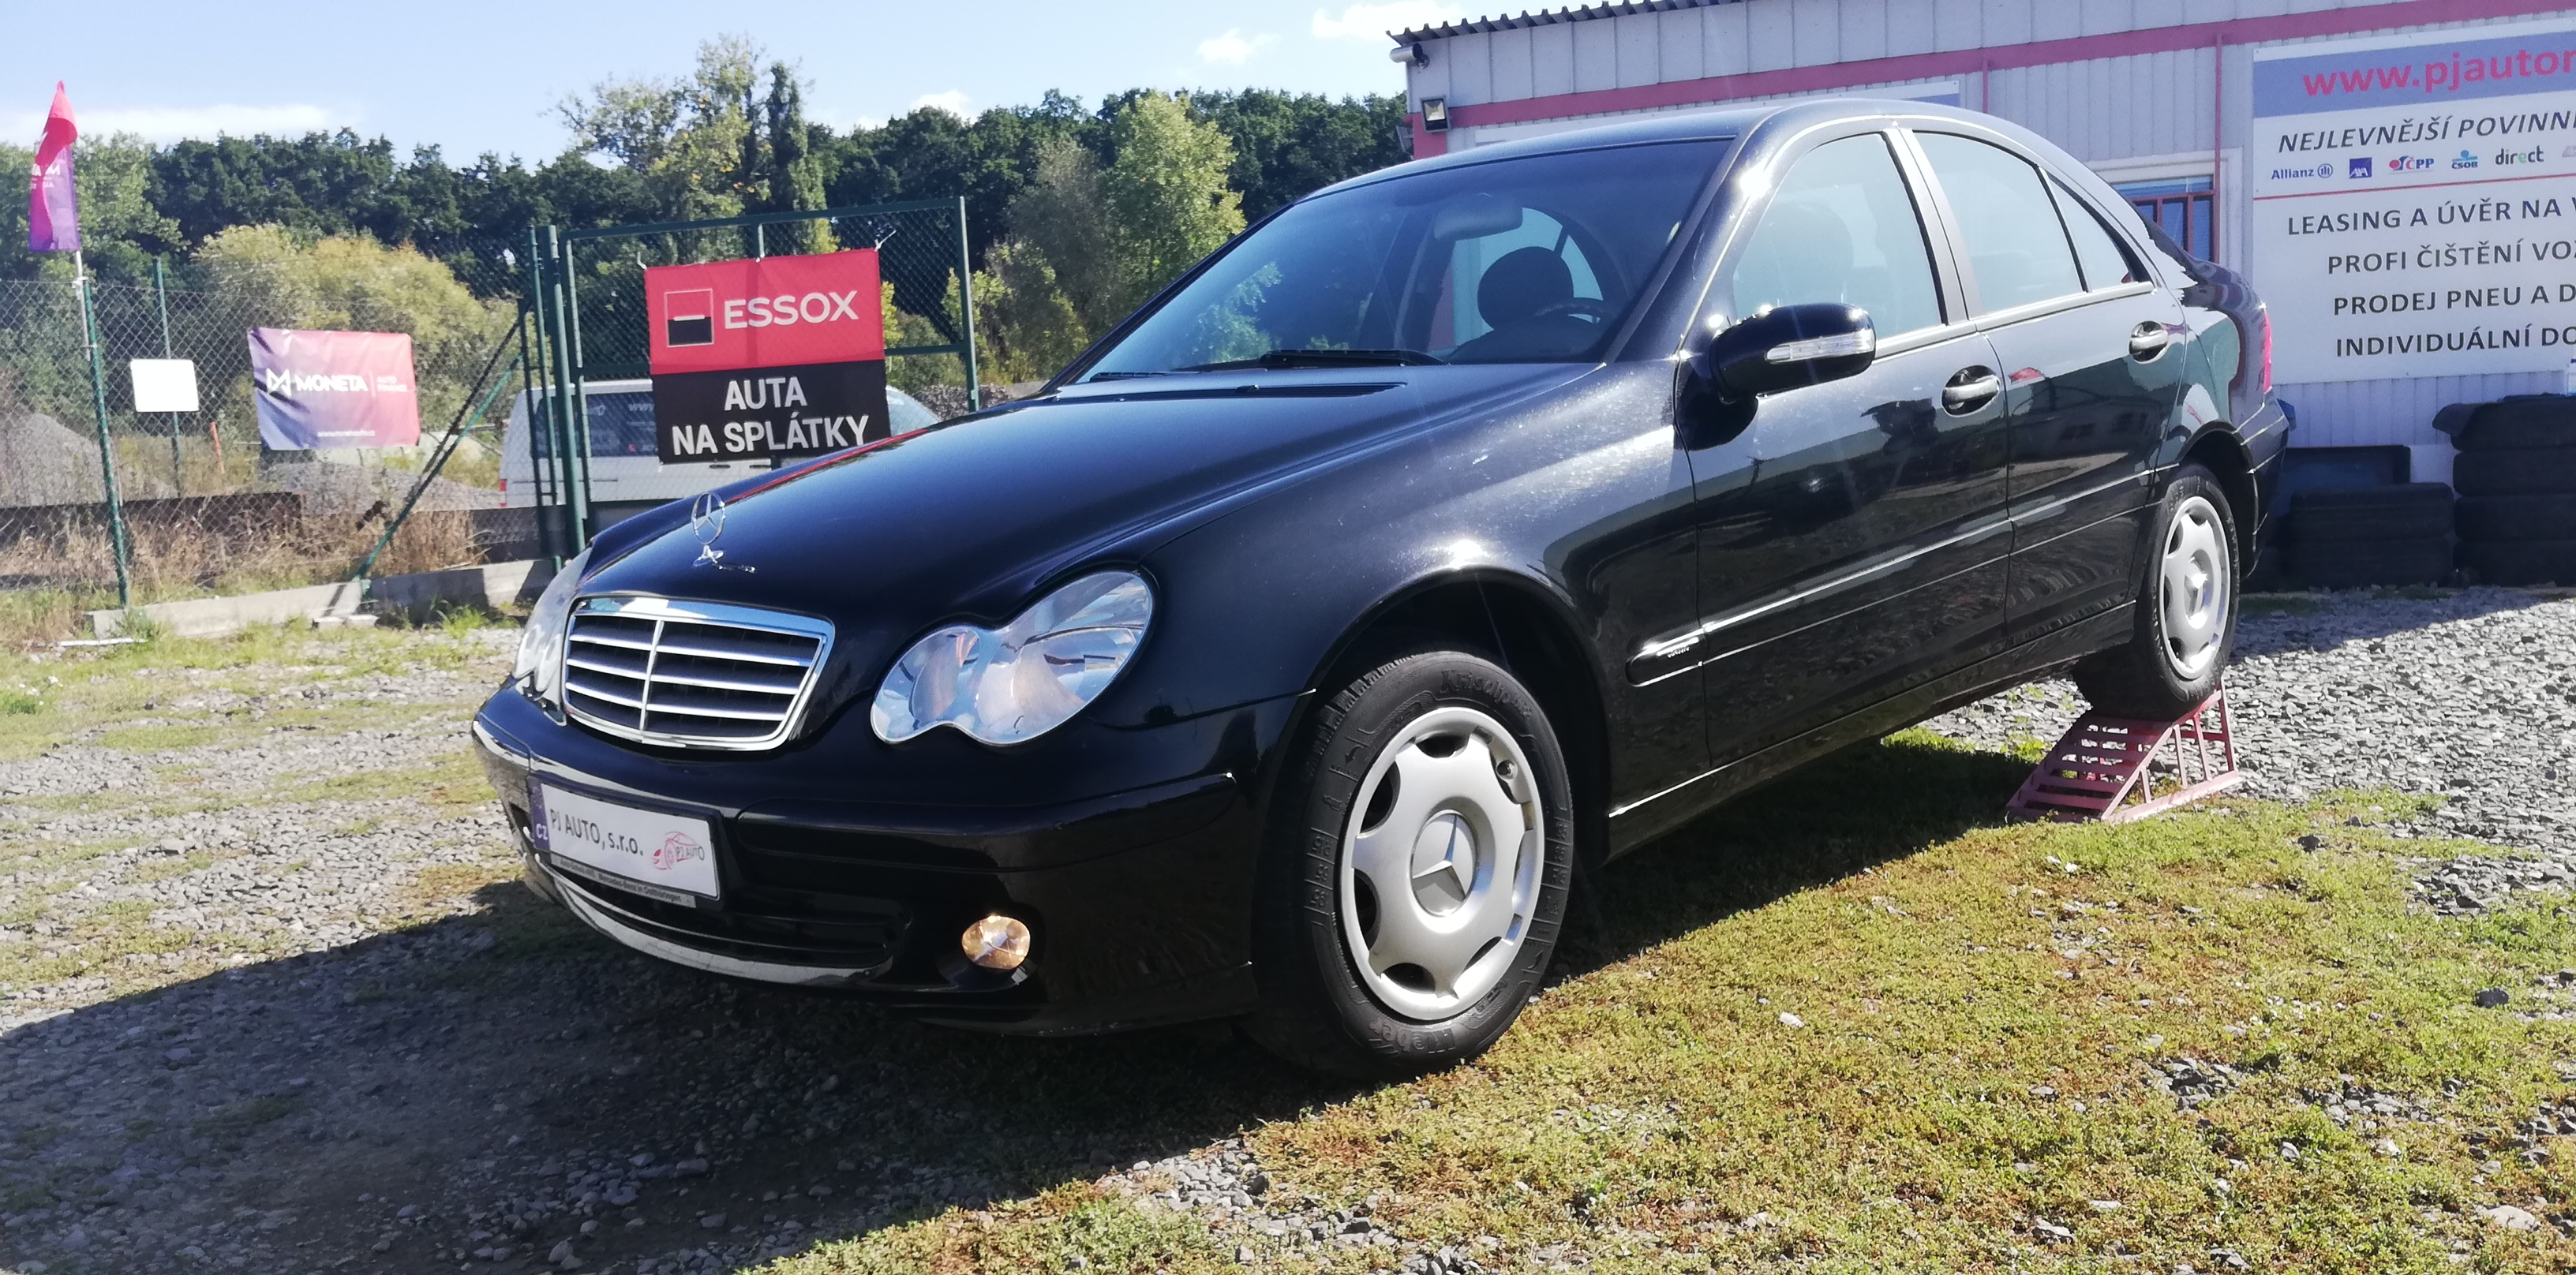 Mercedes-Benz C180 Kompressor 105kW,AAC,Temp,1majitel